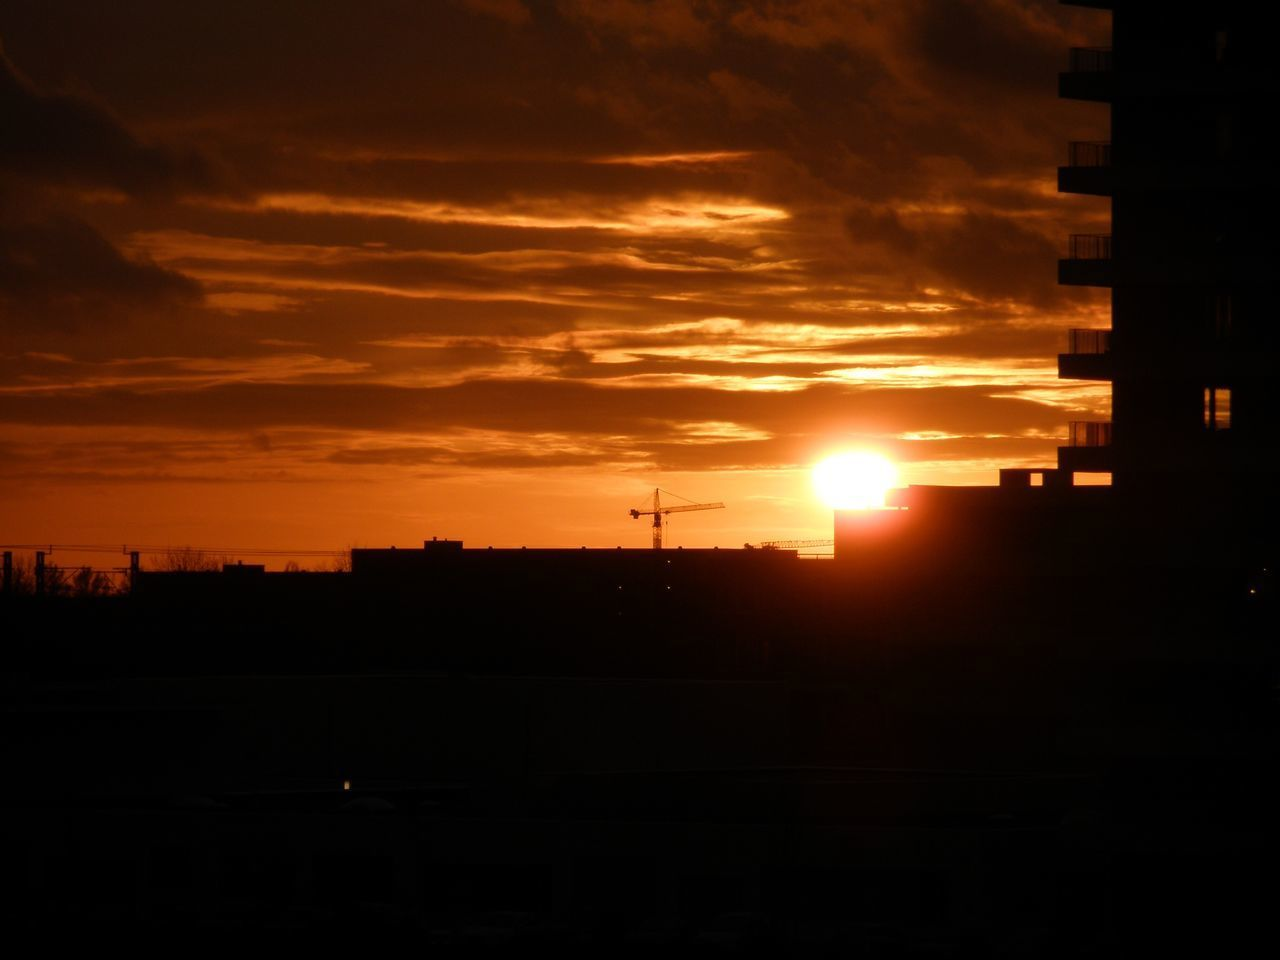 sunset, sky, cloud - sky, orange color, silhouette, architecture, built structure, sun, beauty in nature, scenics - nature, no people, building exterior, nature, sunlight, idyllic, outdoors, city, tranquility, tranquil scene, dramatic sky, dark